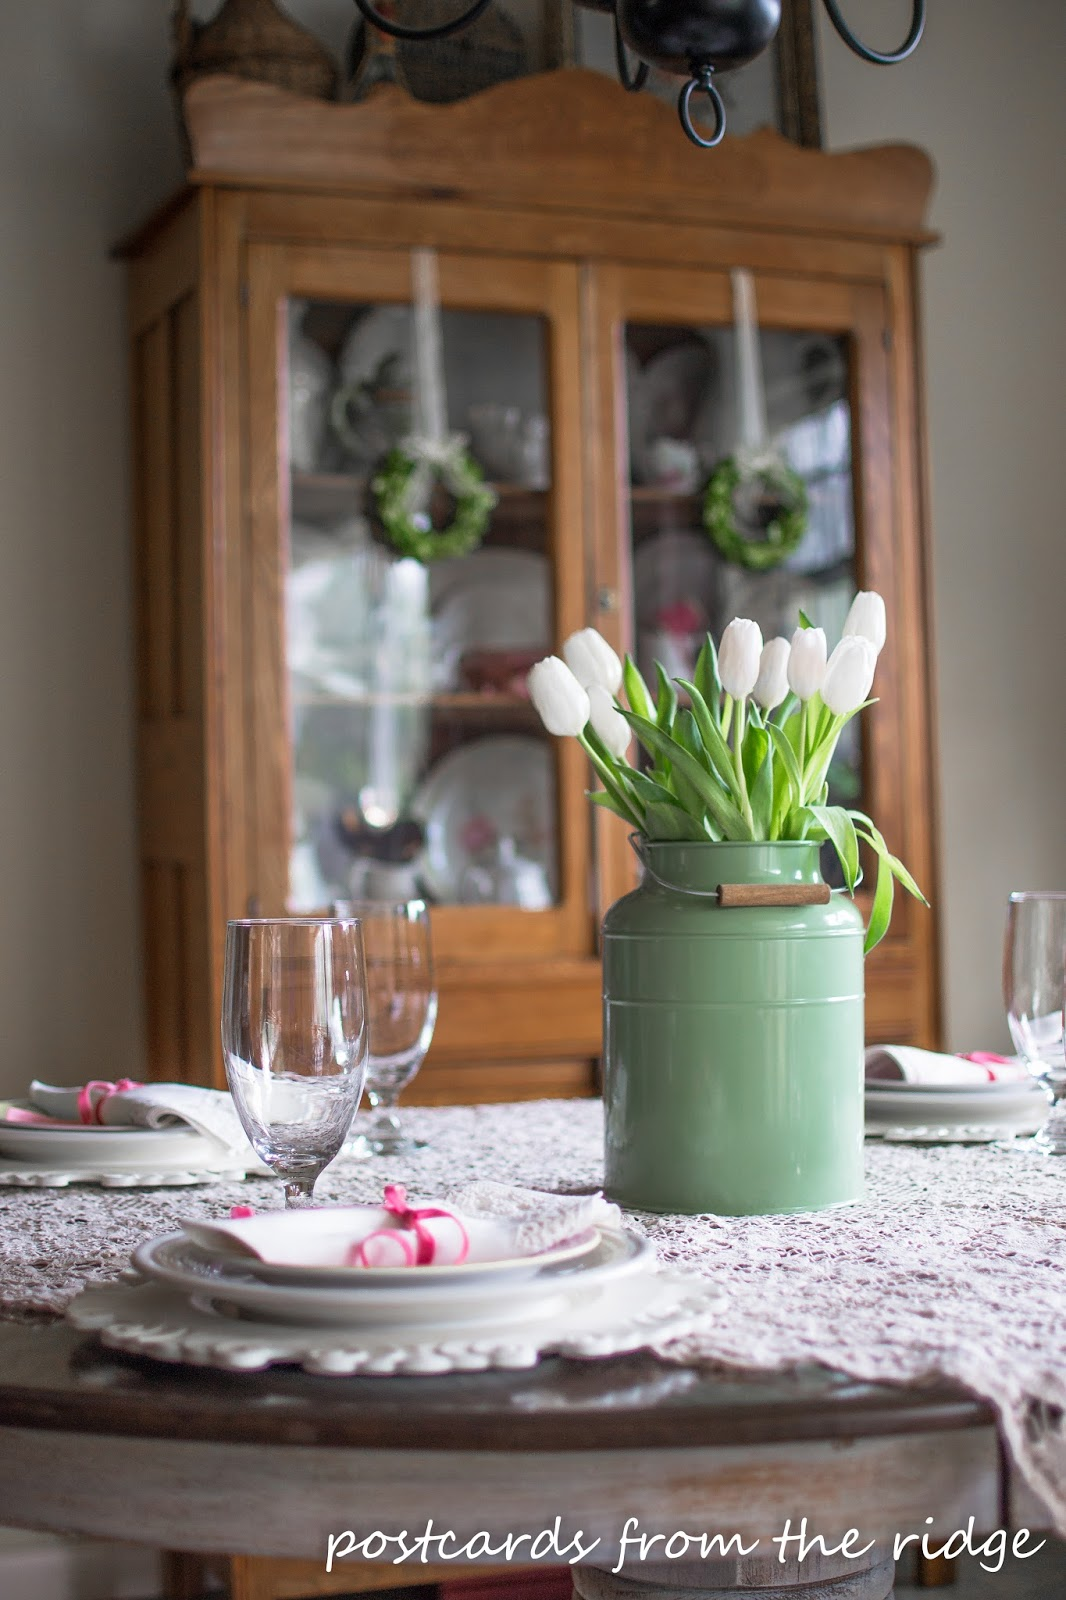 White tulips as a centerpiece for a spring table with vintage finds. Postcards from the Ridge.